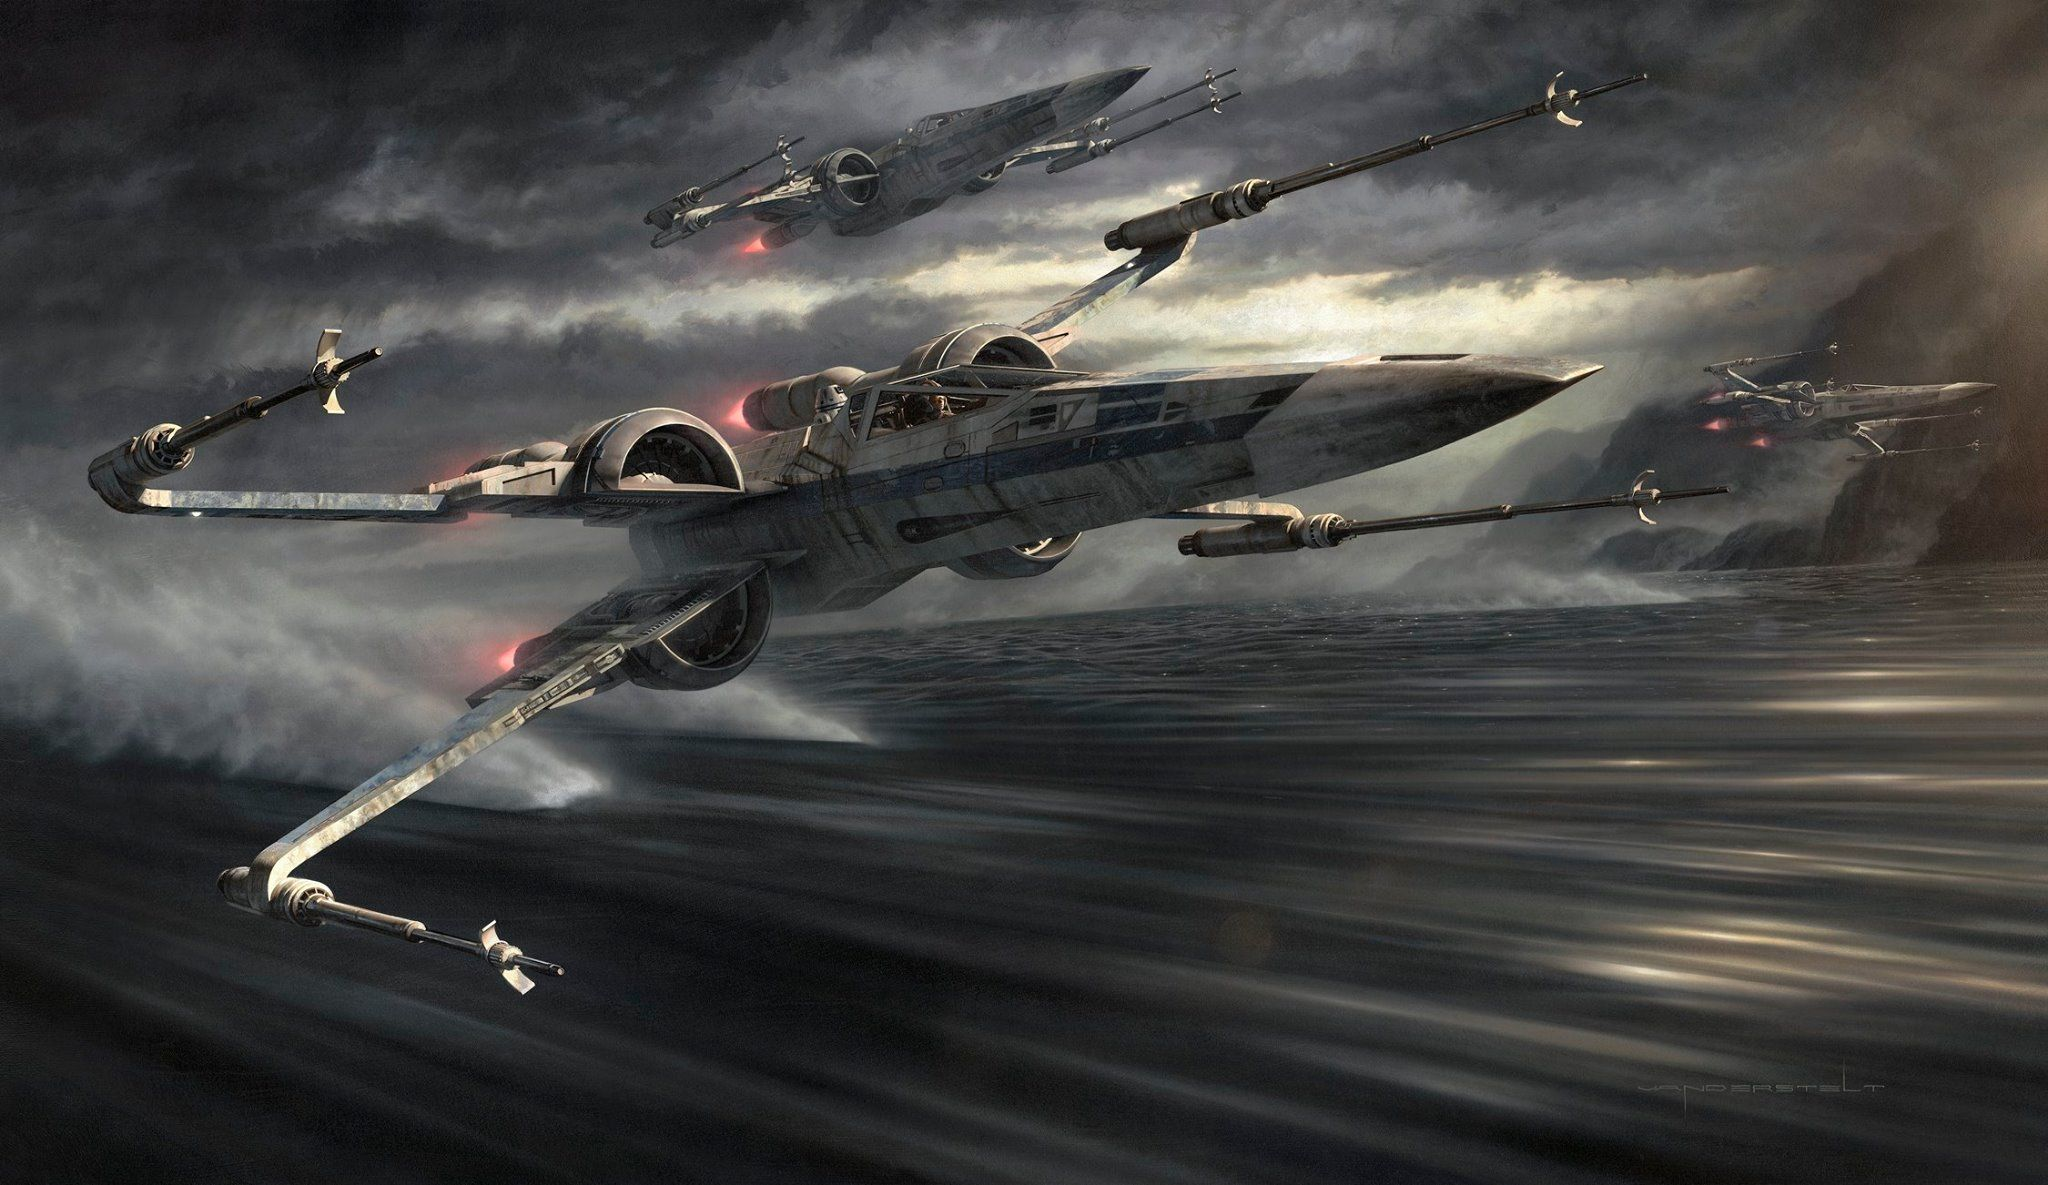 jerry vanderstelt's star wars the force awakens painting - tags